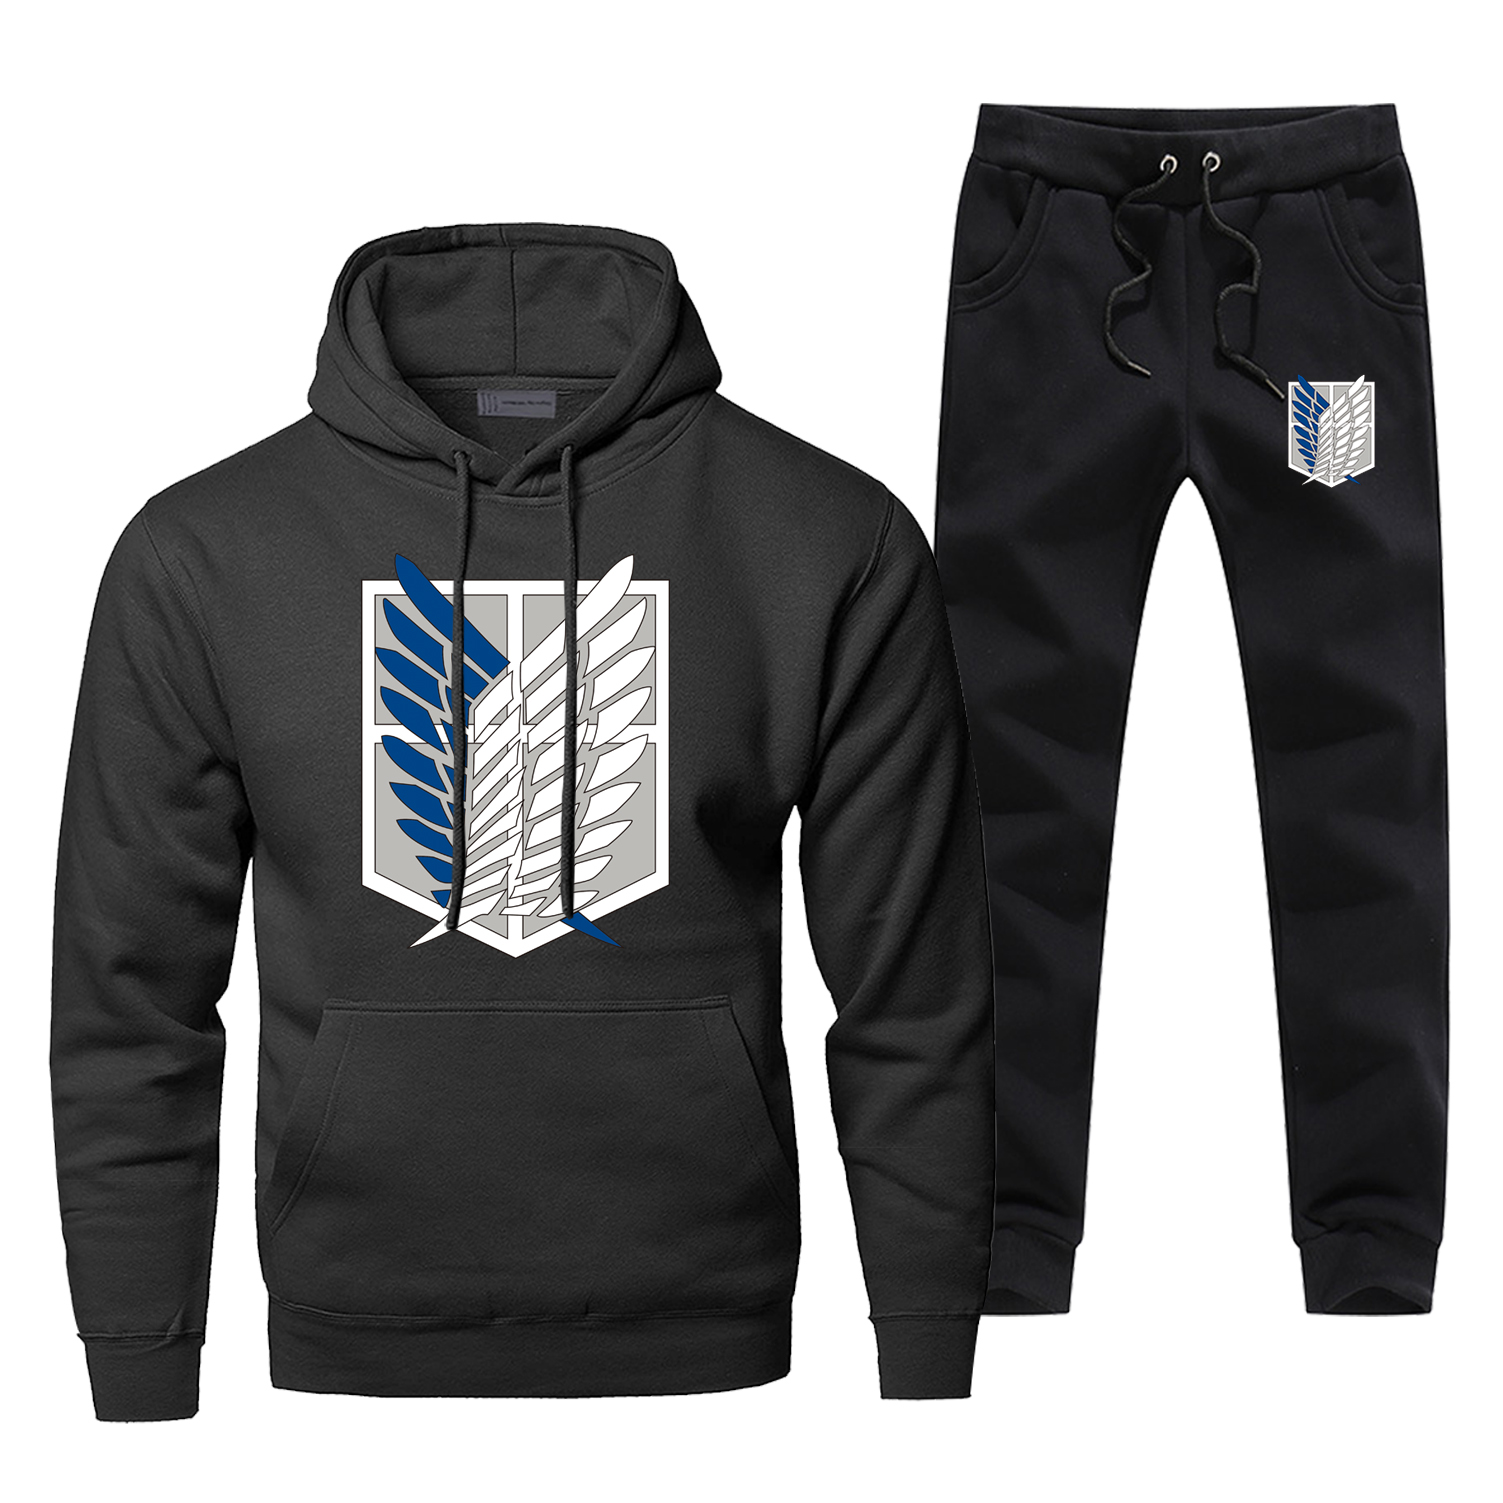 Attack On Titan Mens Hoodies Sets Two Piece Pant Japanese Anime Hoodie Sweatshirt Sweatpants Streetwear Sportswear Sweatshirts